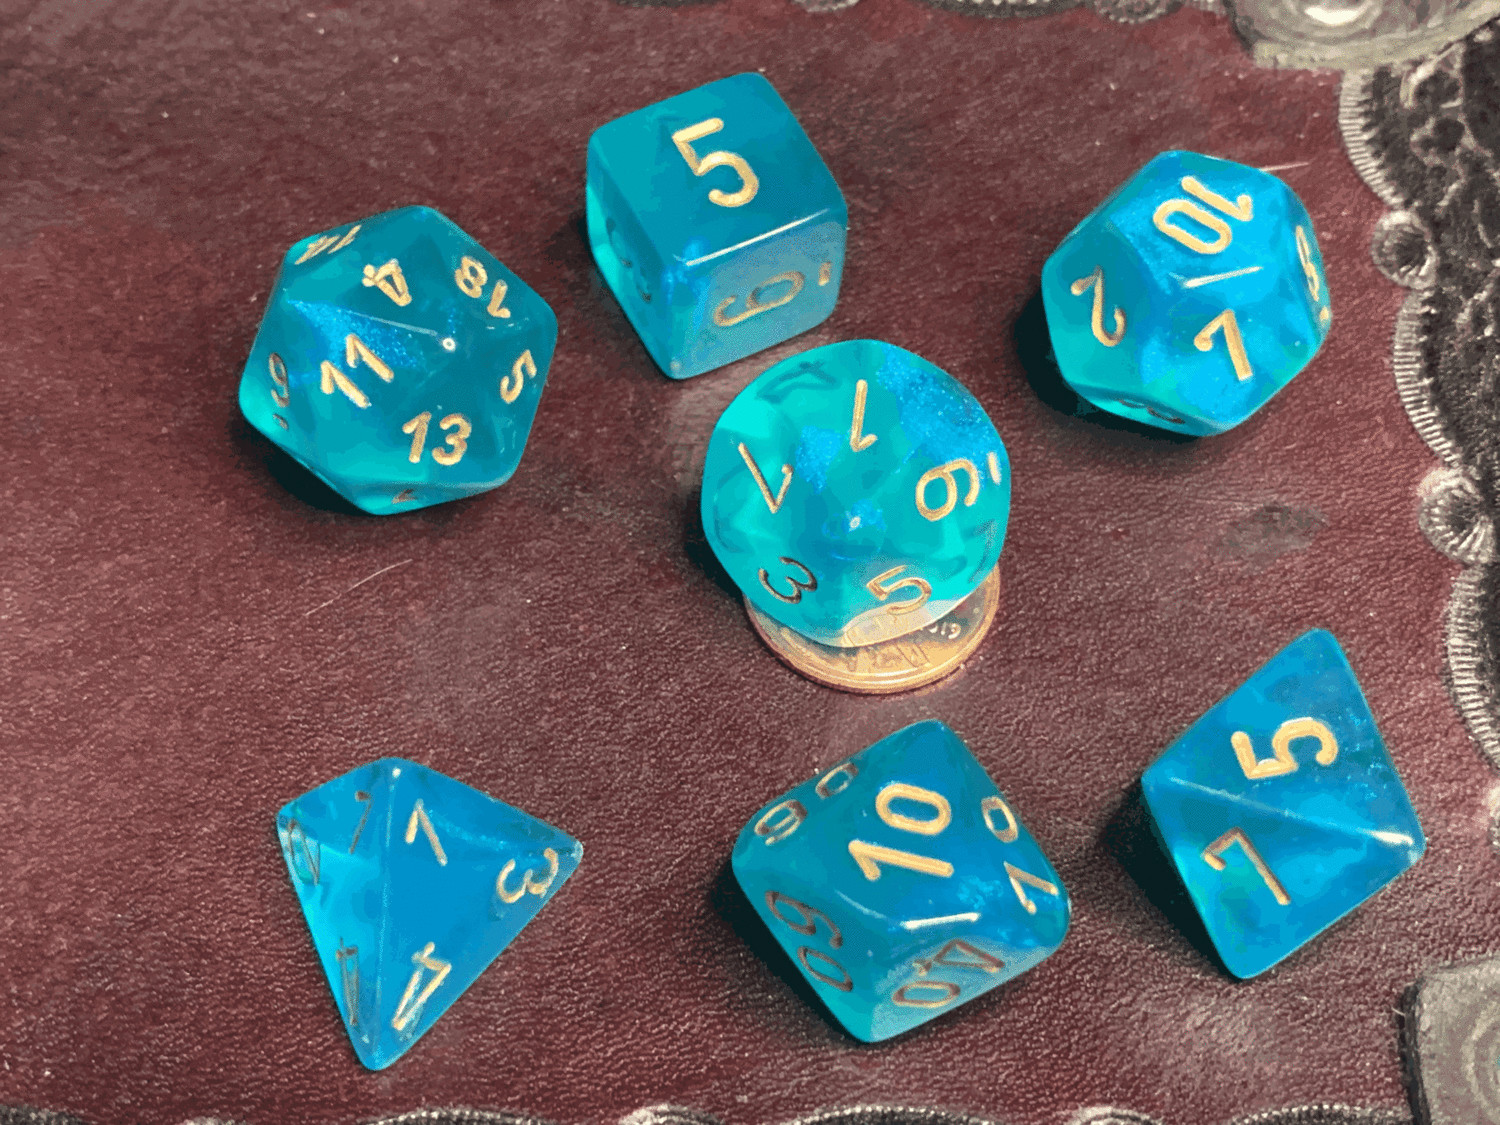 16mm 7 Die Polyhedral Dice Set - Borealis Teal with Gold